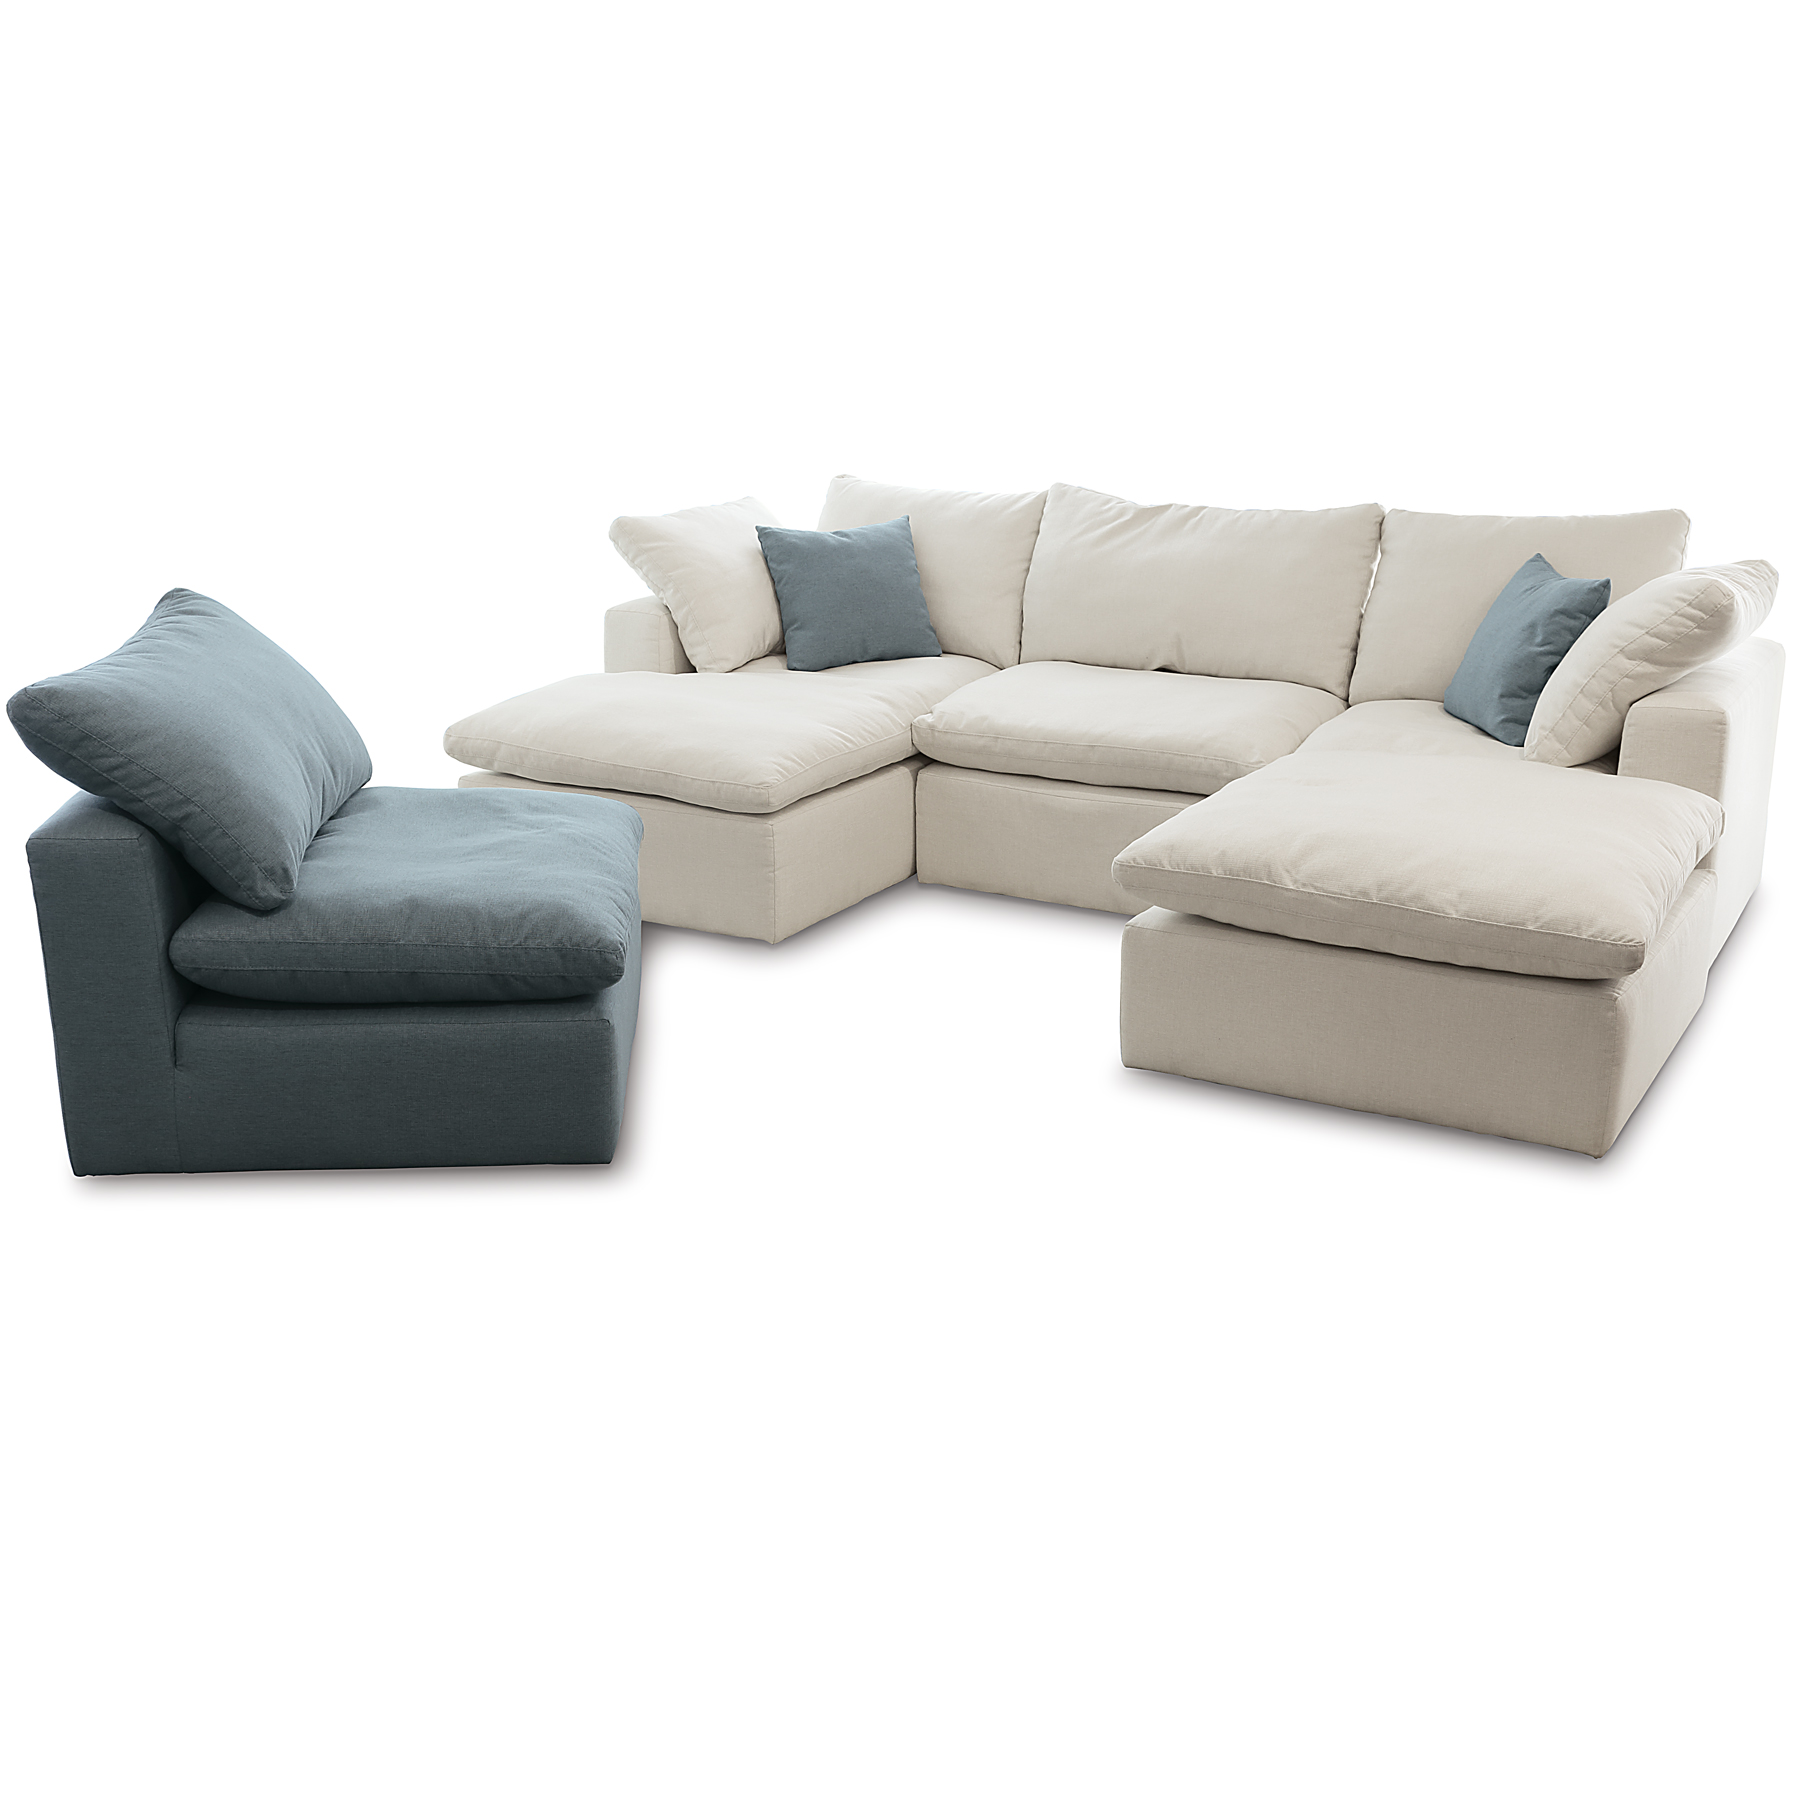 Bloom Modular Sectional 150 Fabrics